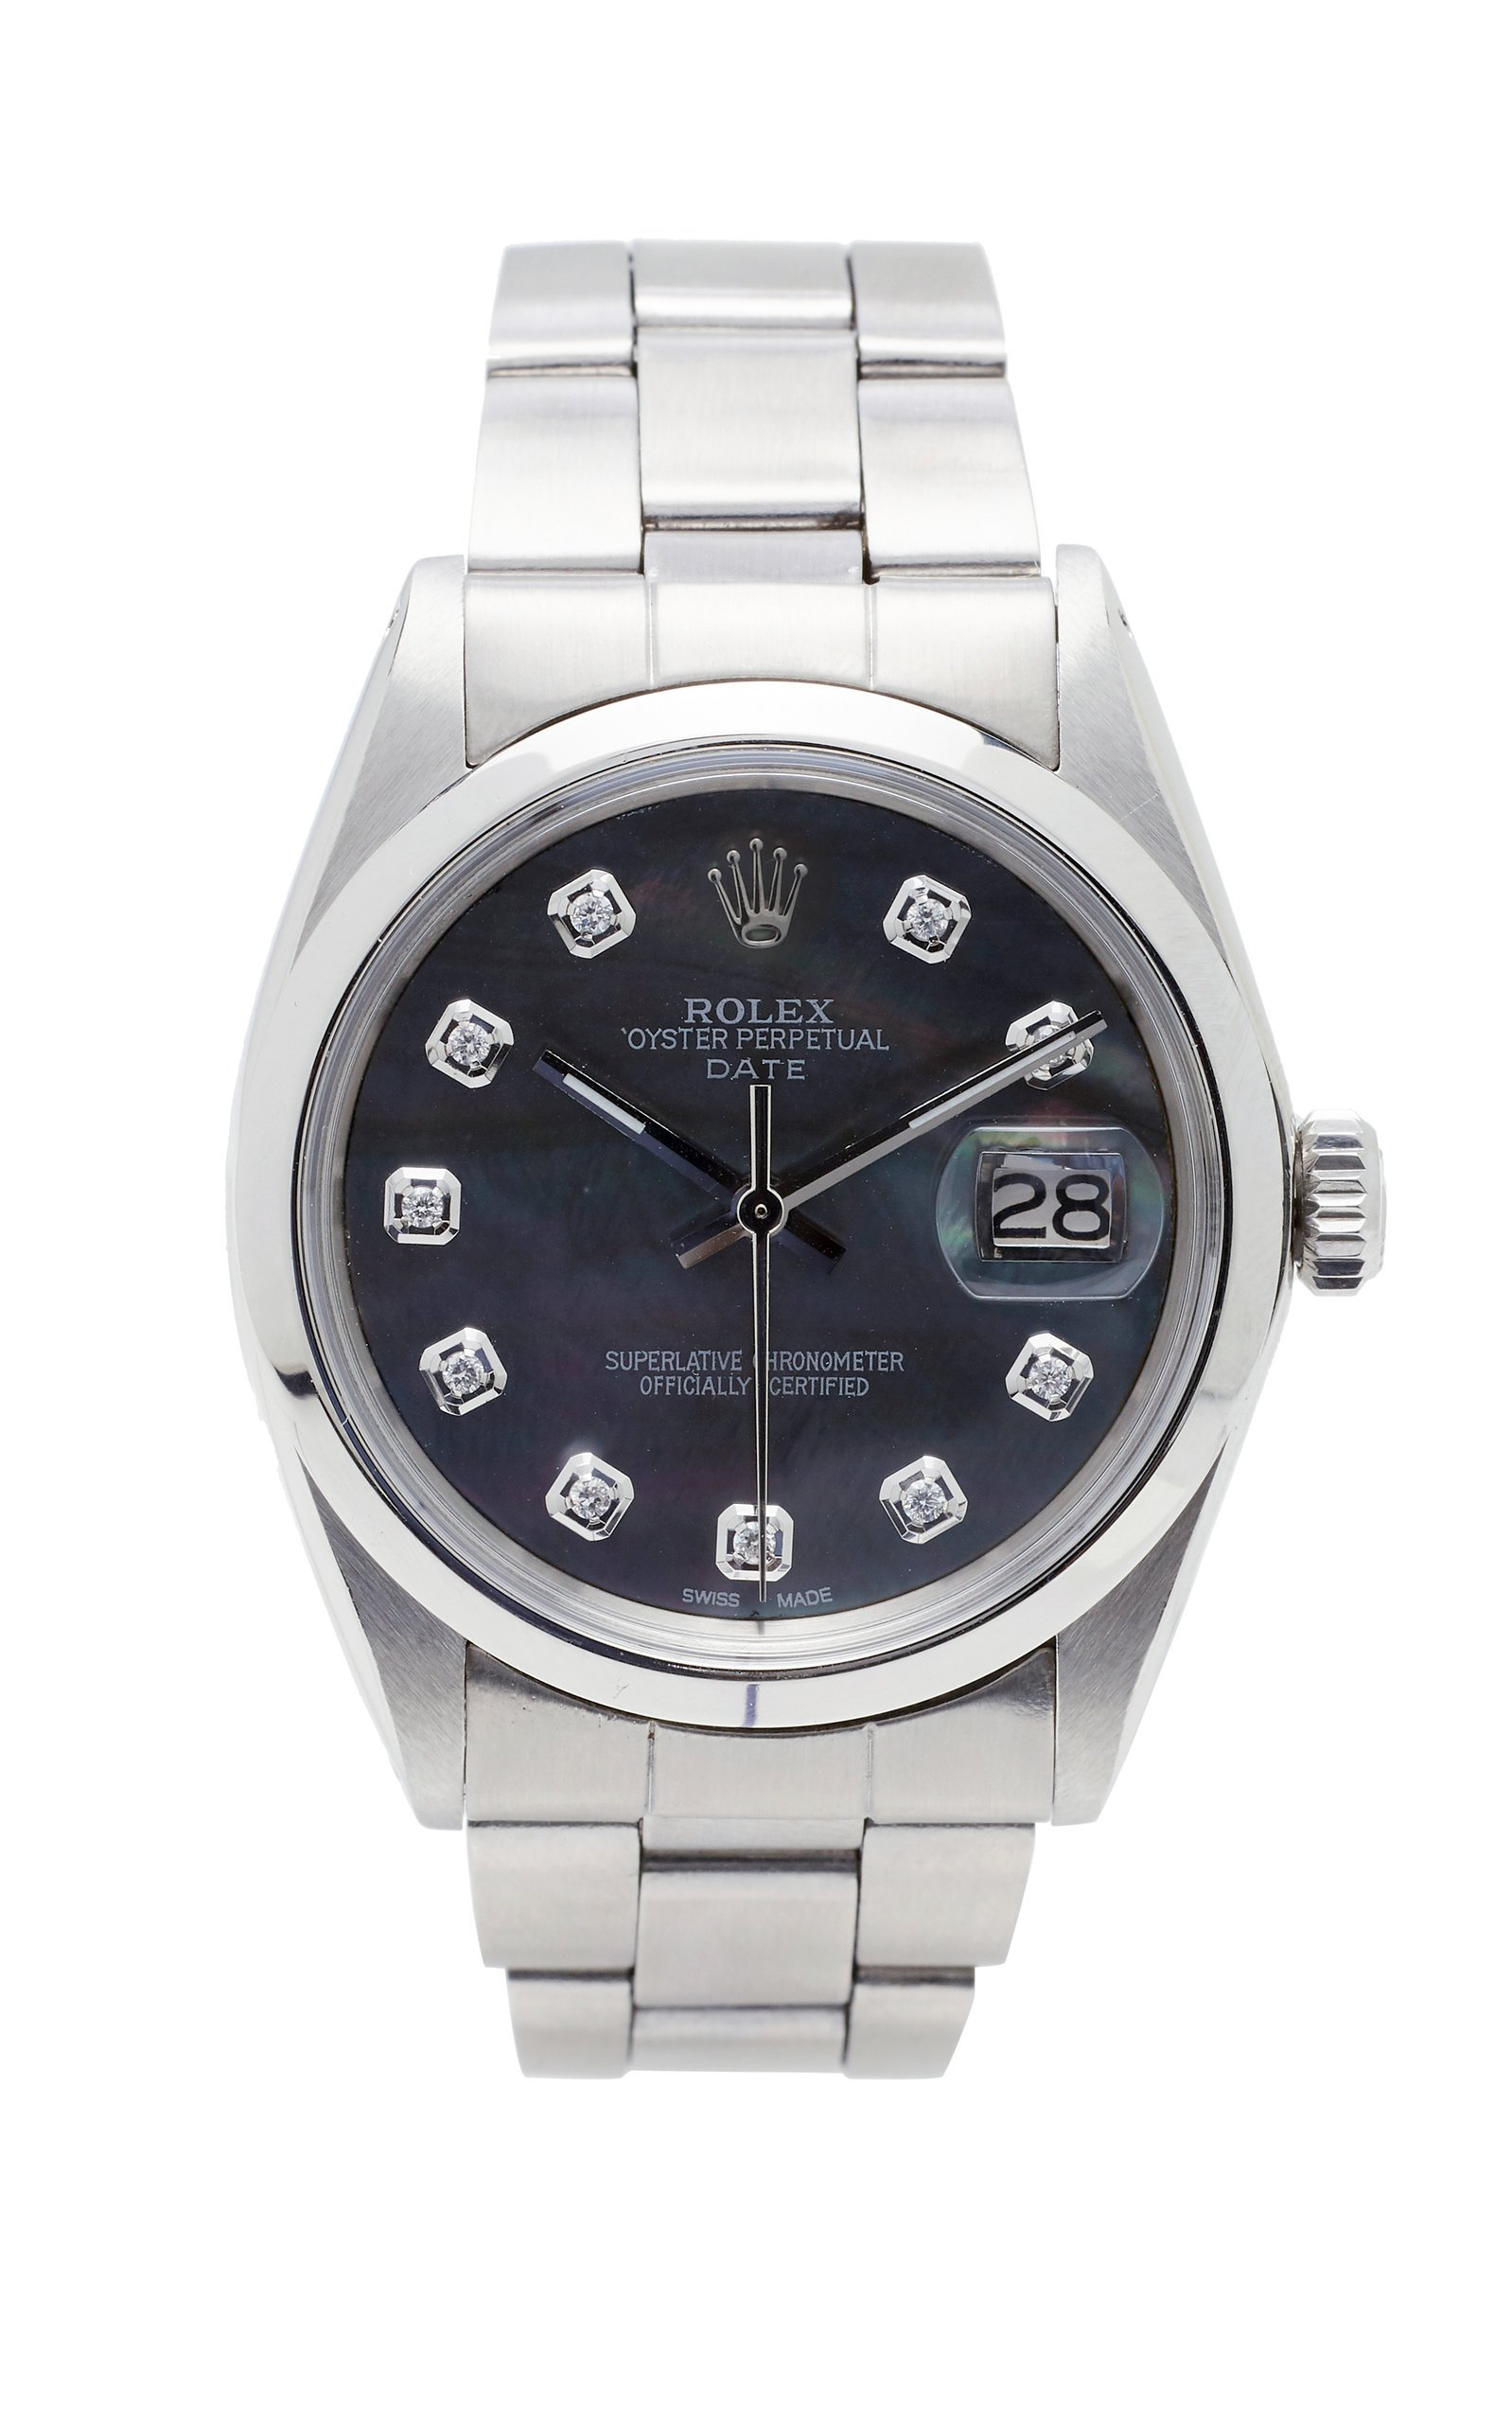 Vintage Watches Rolex Date 34mm Black Shell Pearlized Diamond Dial